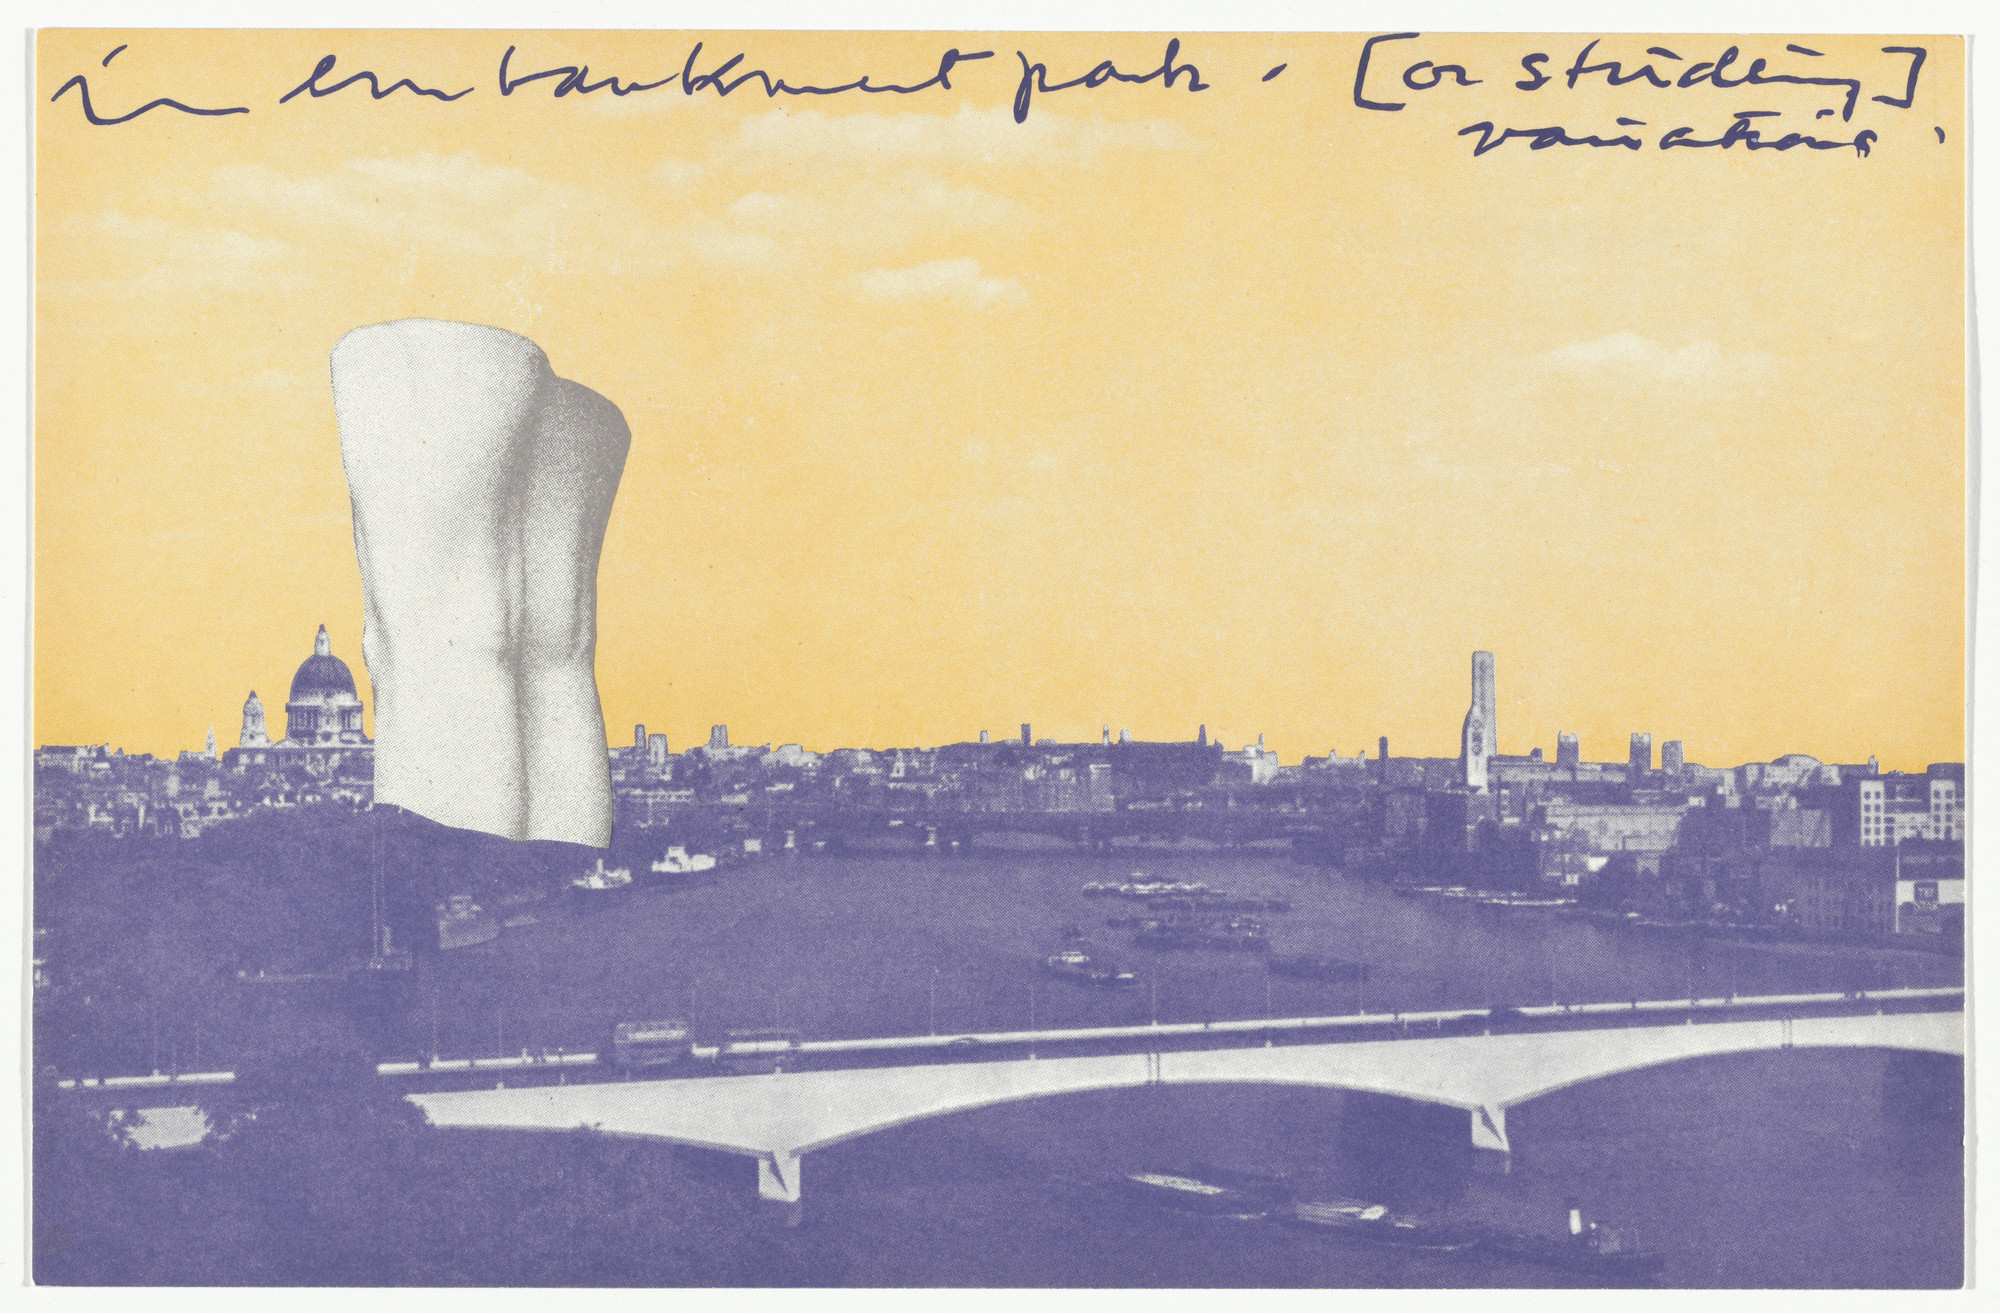 Claes Oldenburg. Giant Postcard: Dawn from London Knees 1966. 1966, published 1968